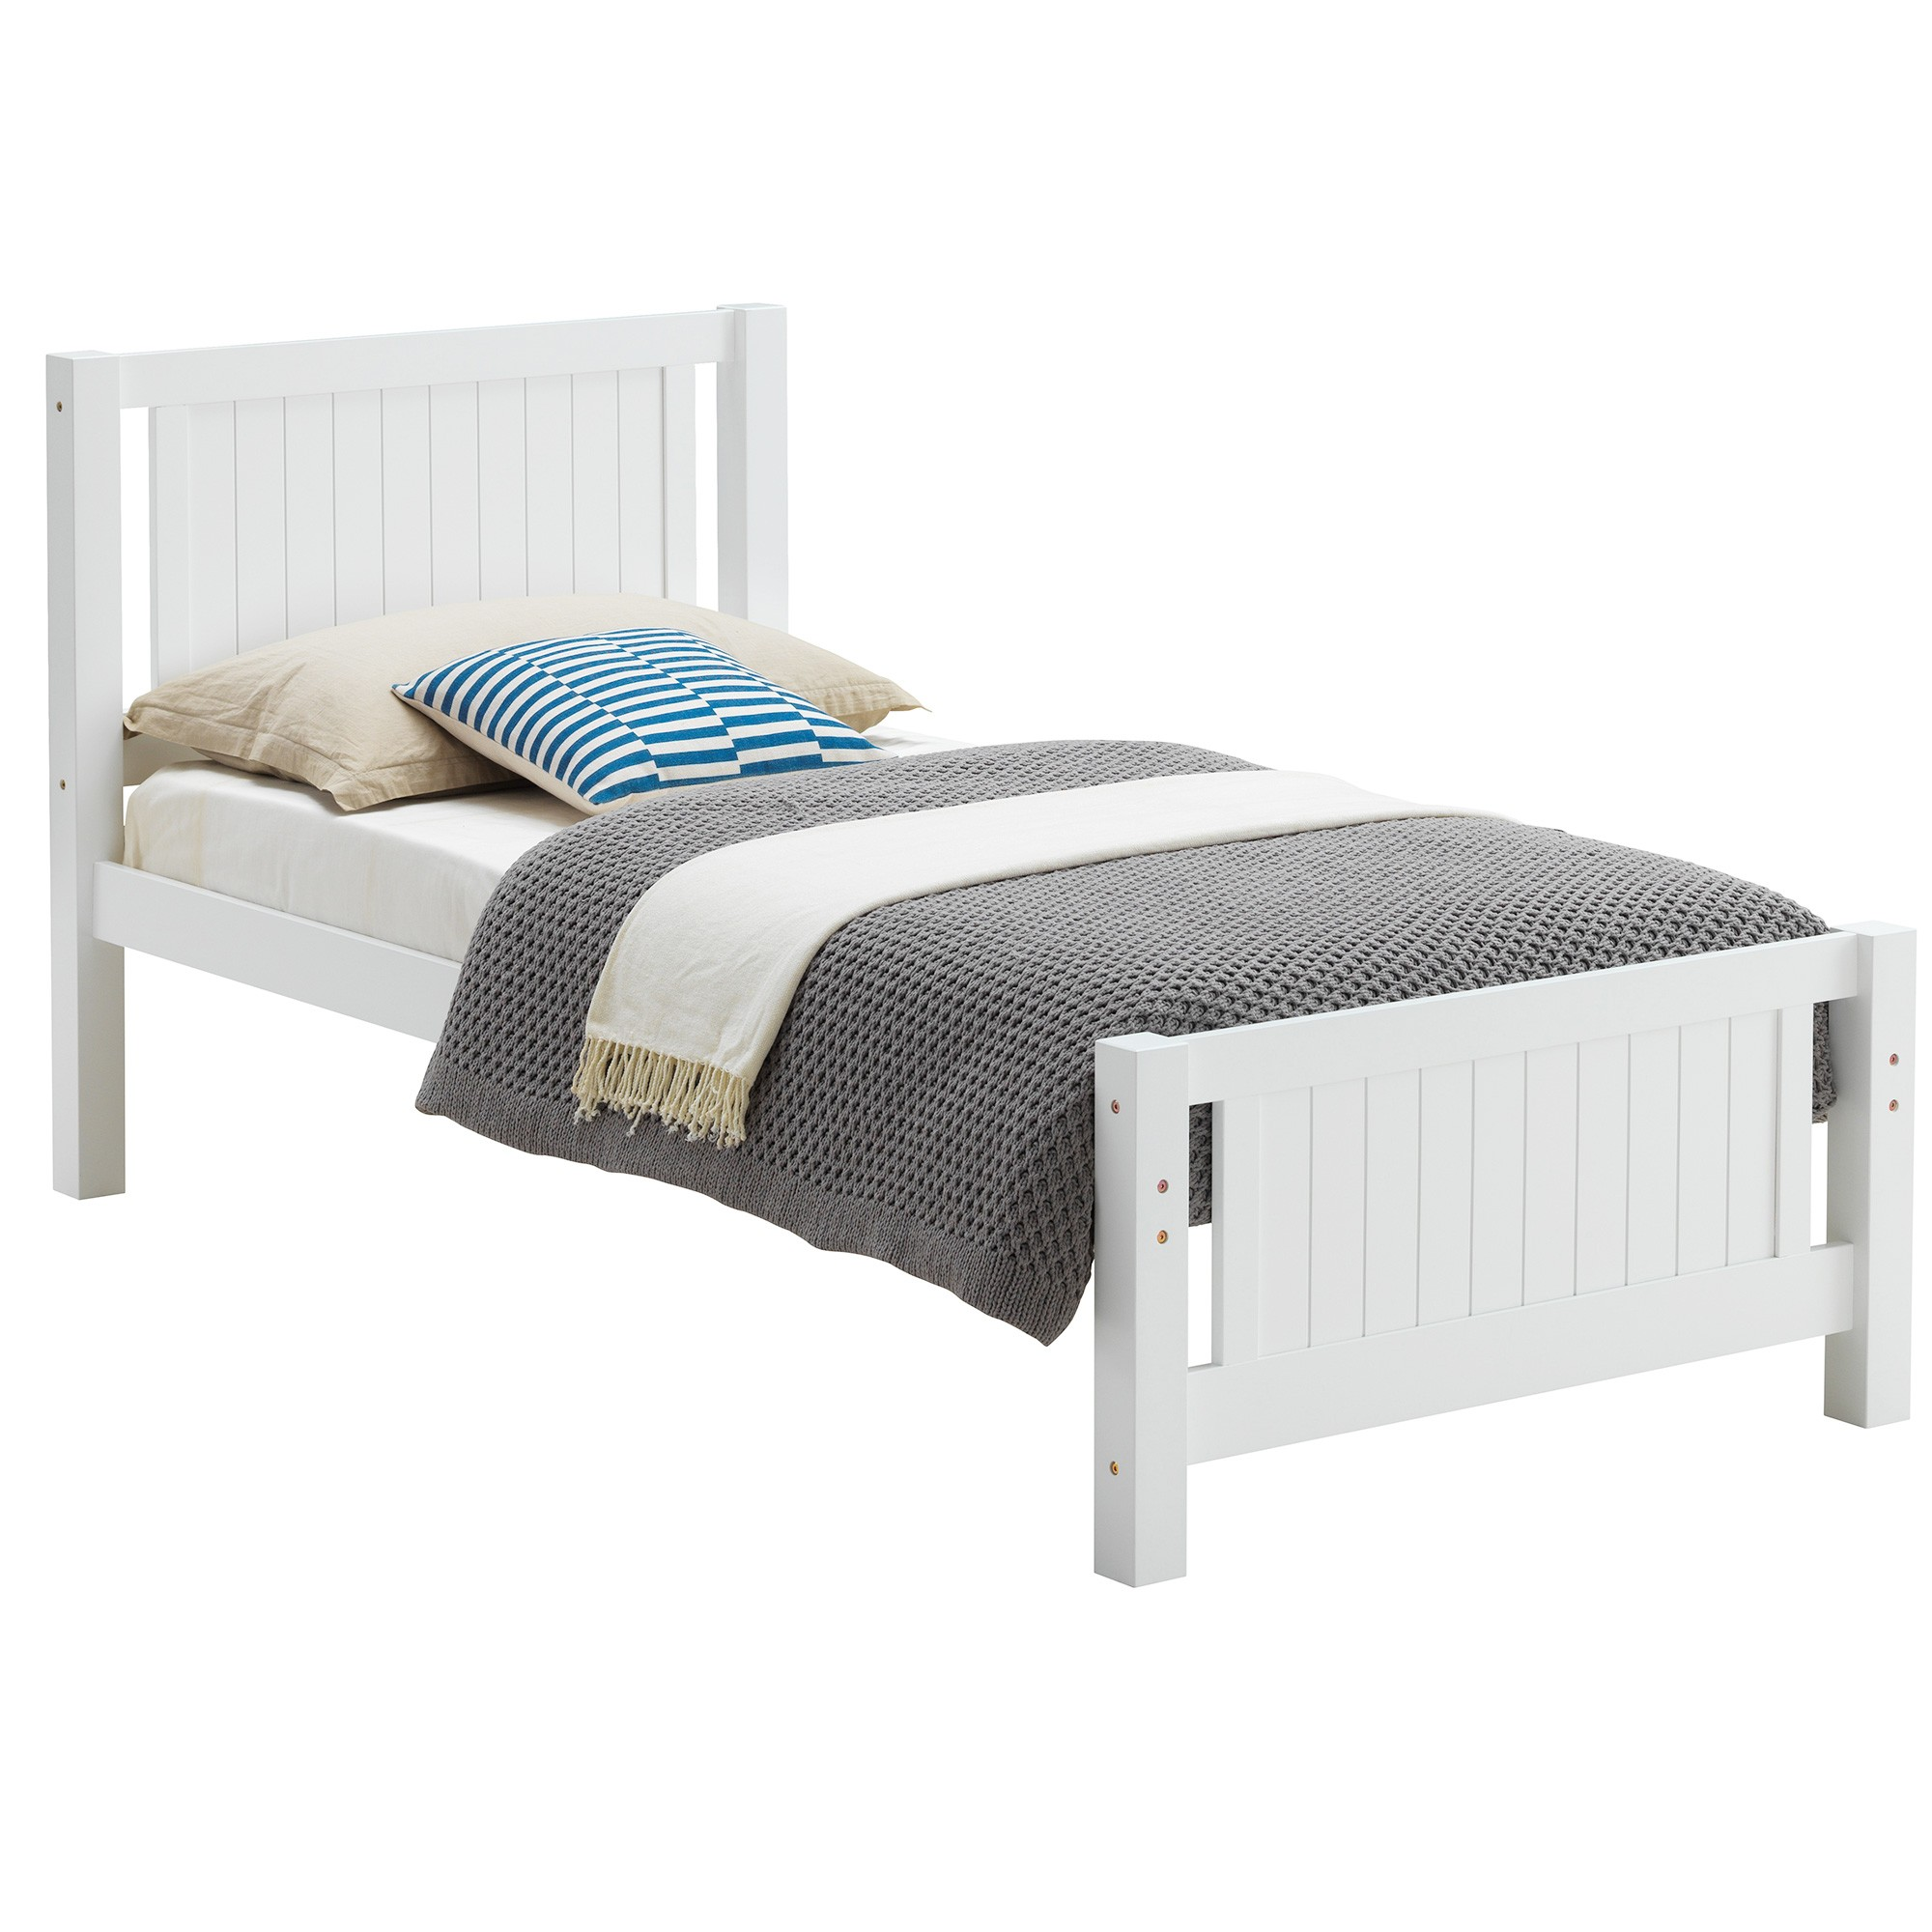 Welling Wooden Bed, Single, White